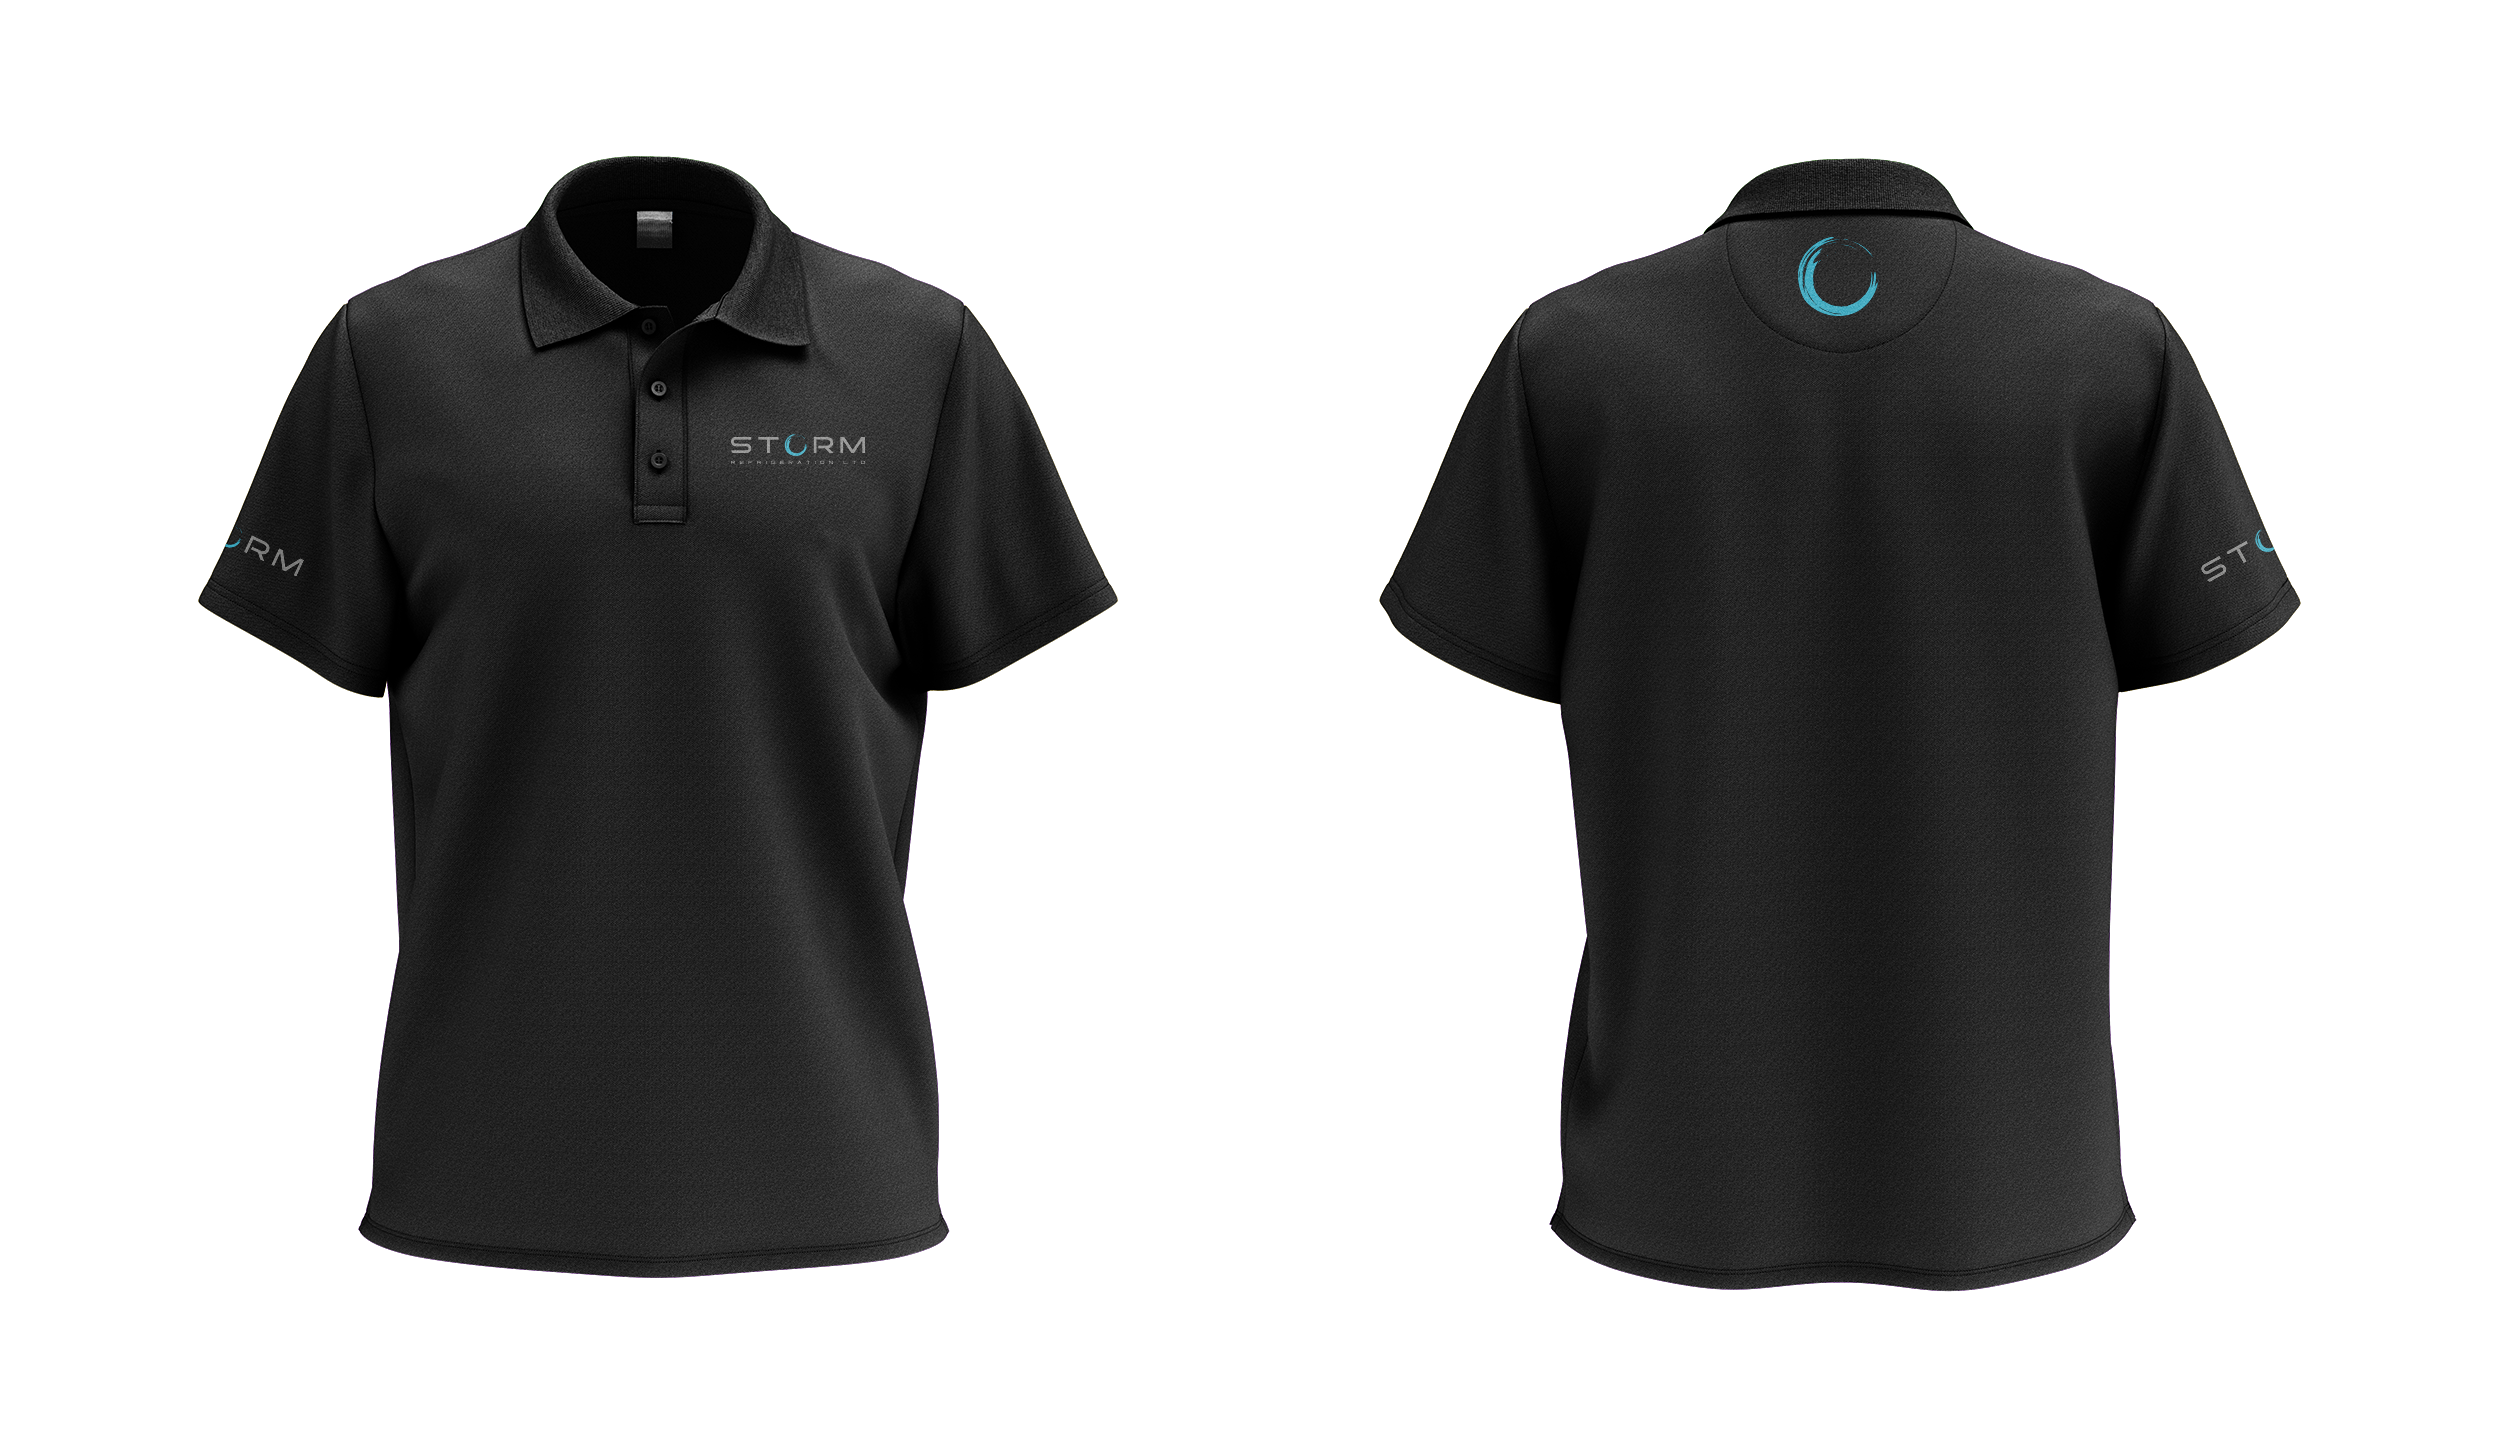 STORM Mobile Engineer Clothing/Apparel